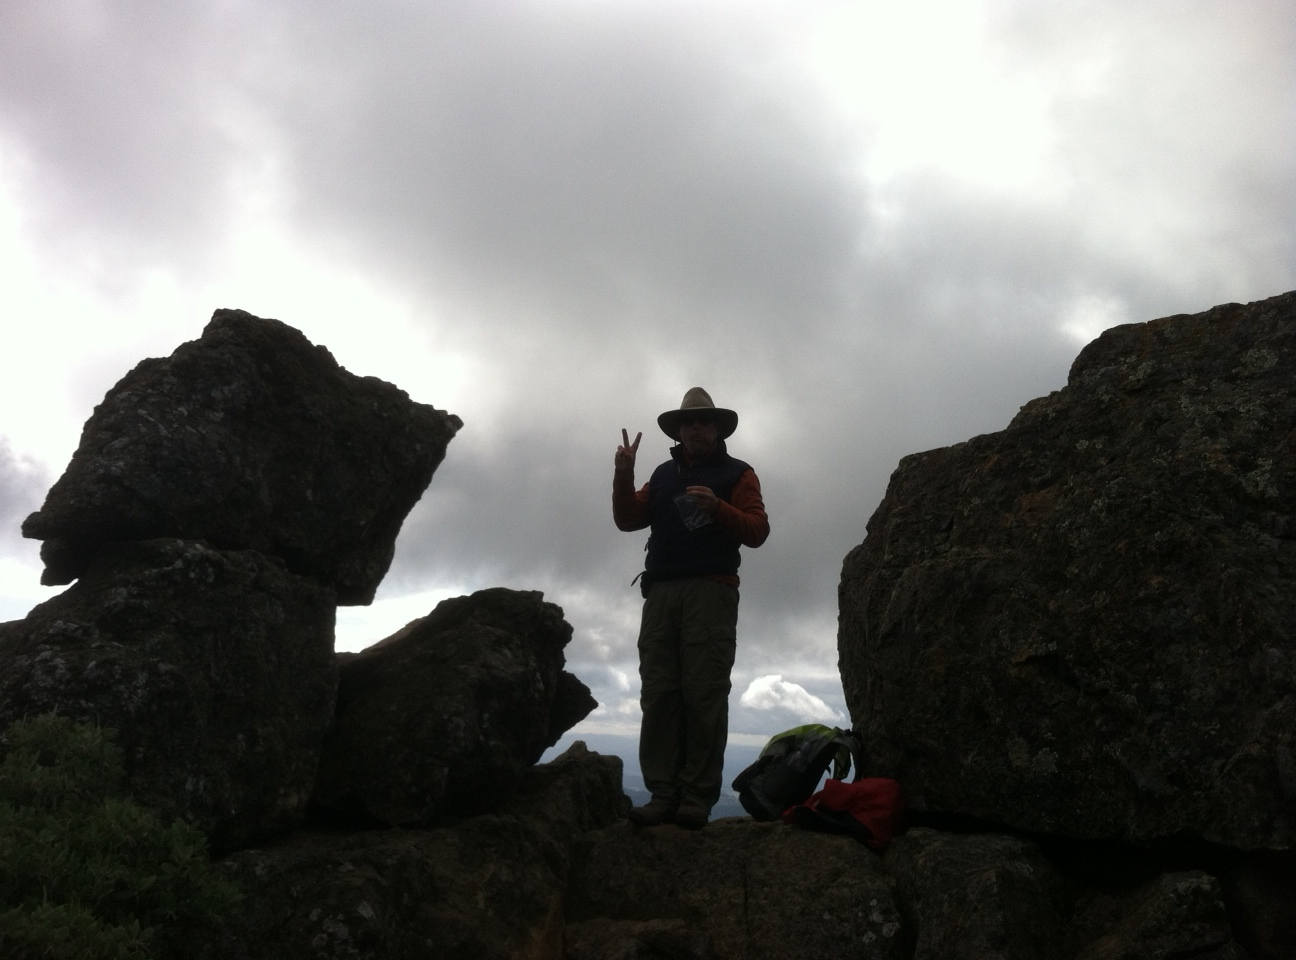 A fellow hiker atop Gunsight Rock